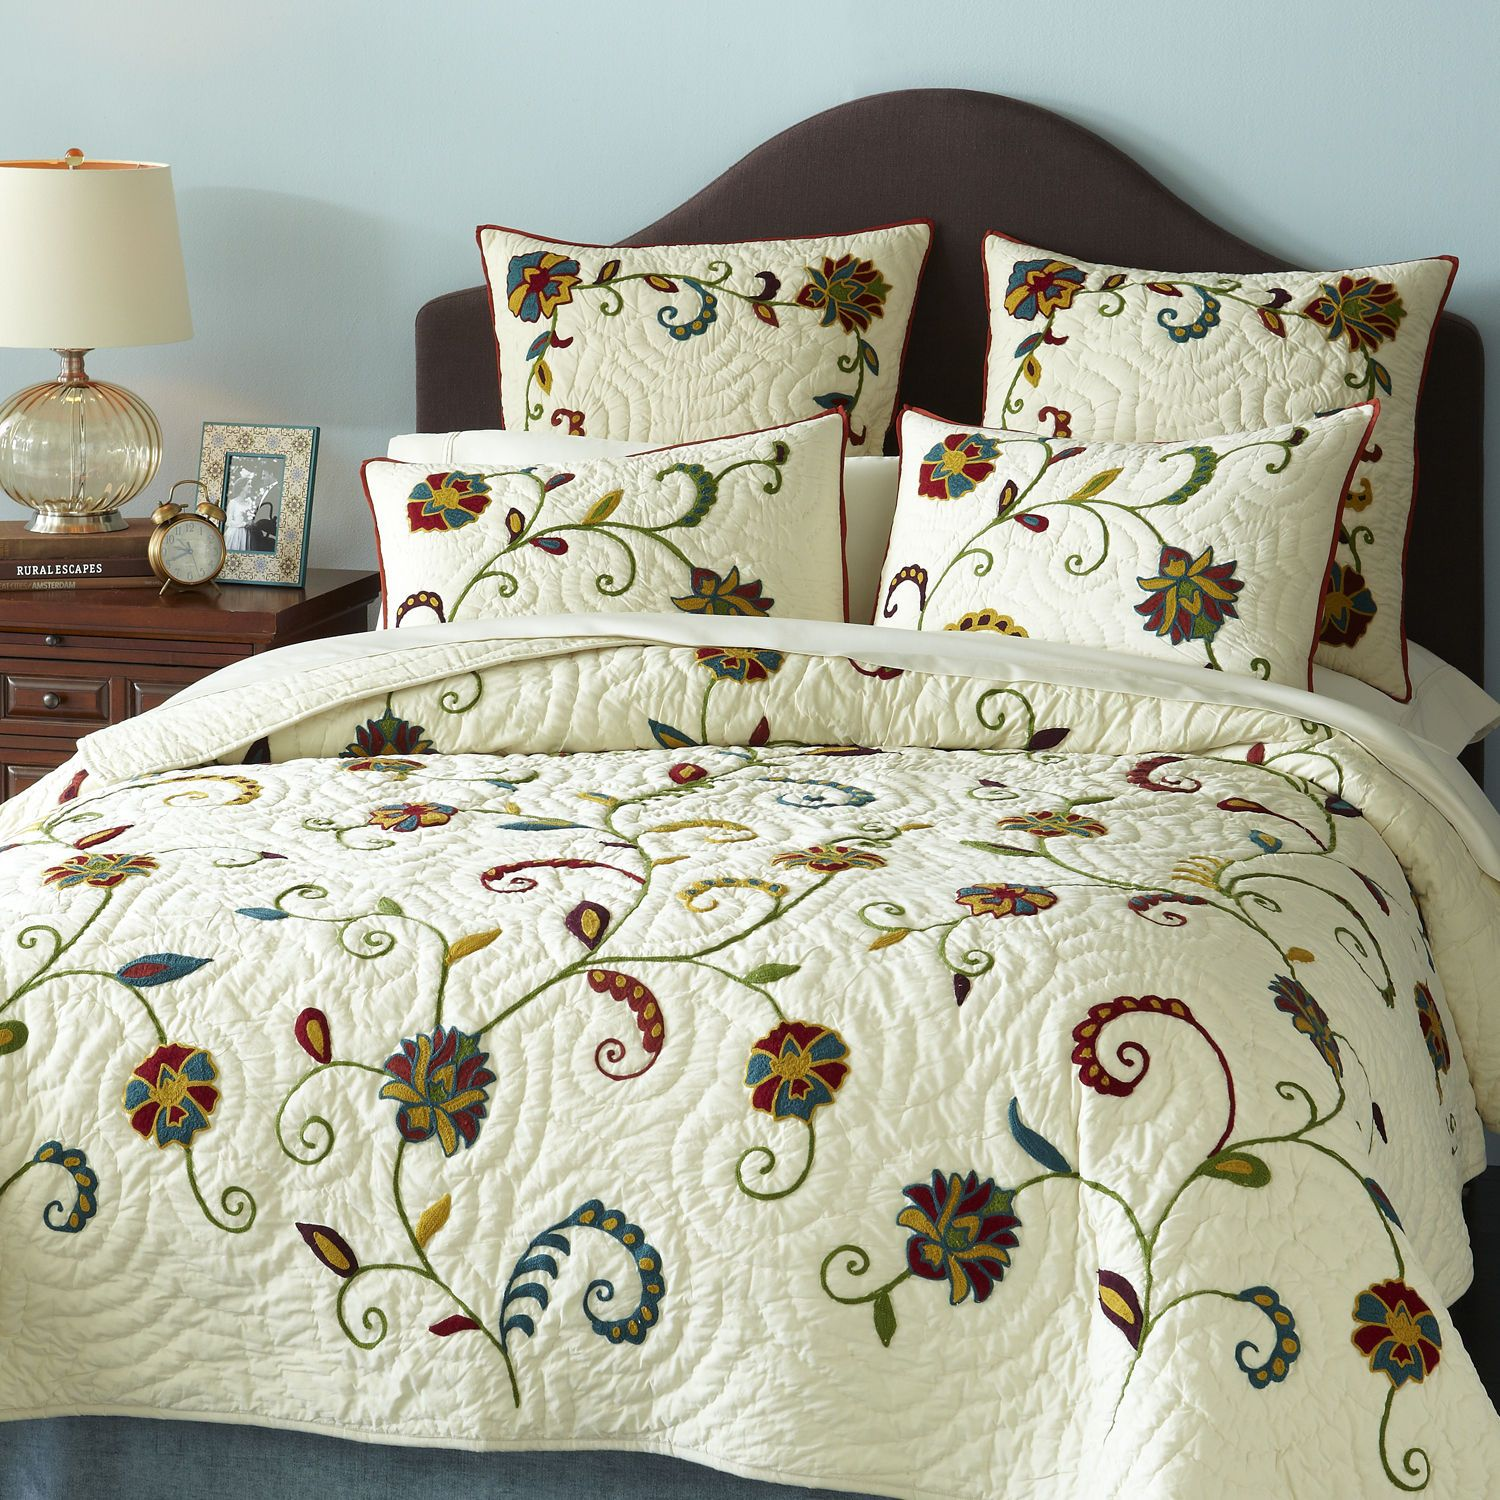 Vivian Floral Bedding   Quilt from Pier One with my Riverway walls  Yes. Vivian Floral Bedding   Quilt from Pier One with my Riverway walls